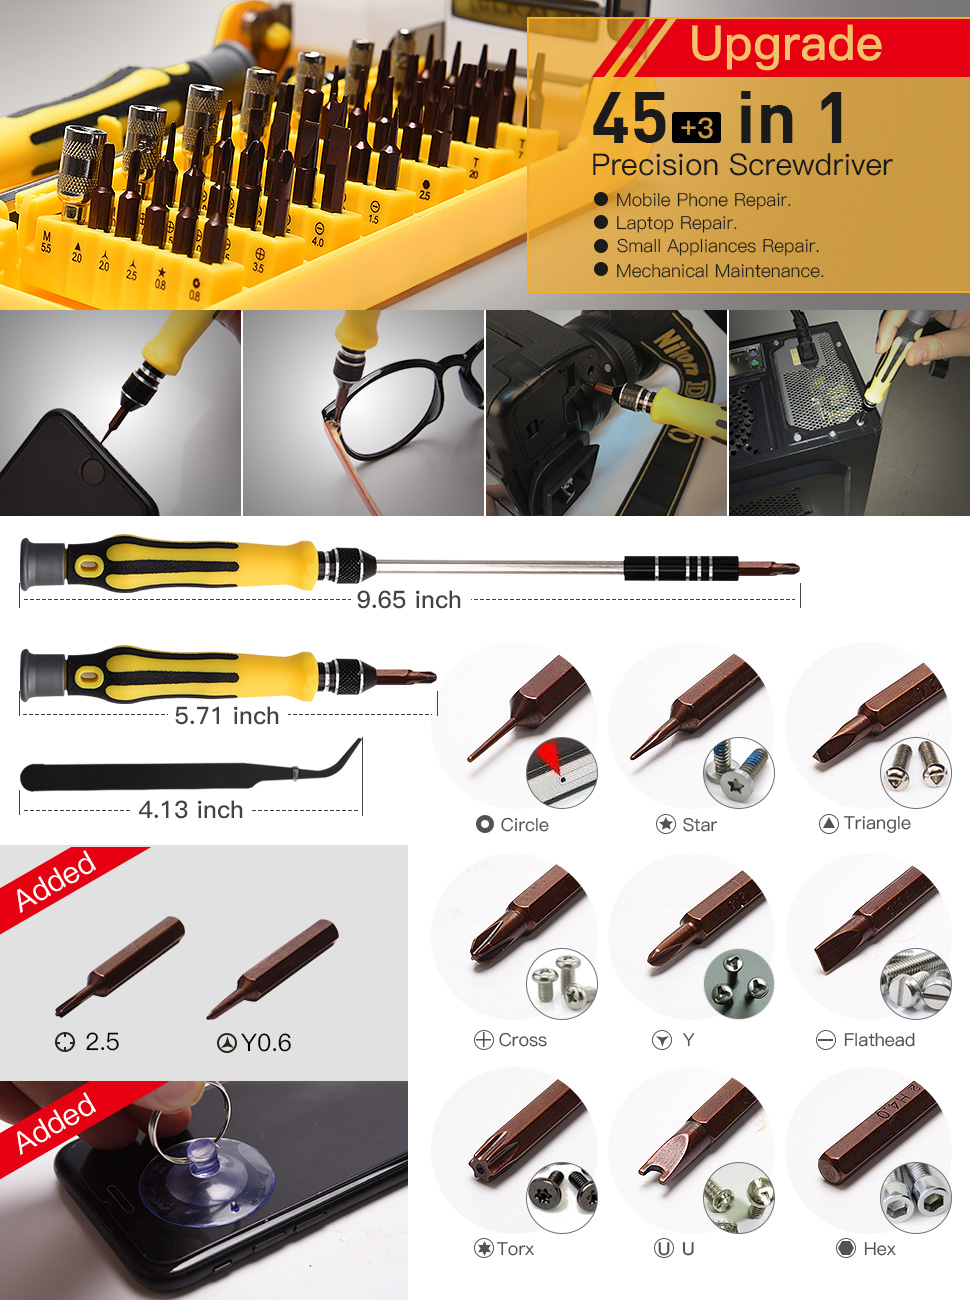 upgrade jackyled 45 in 1 precision screwdriver tool kit compact